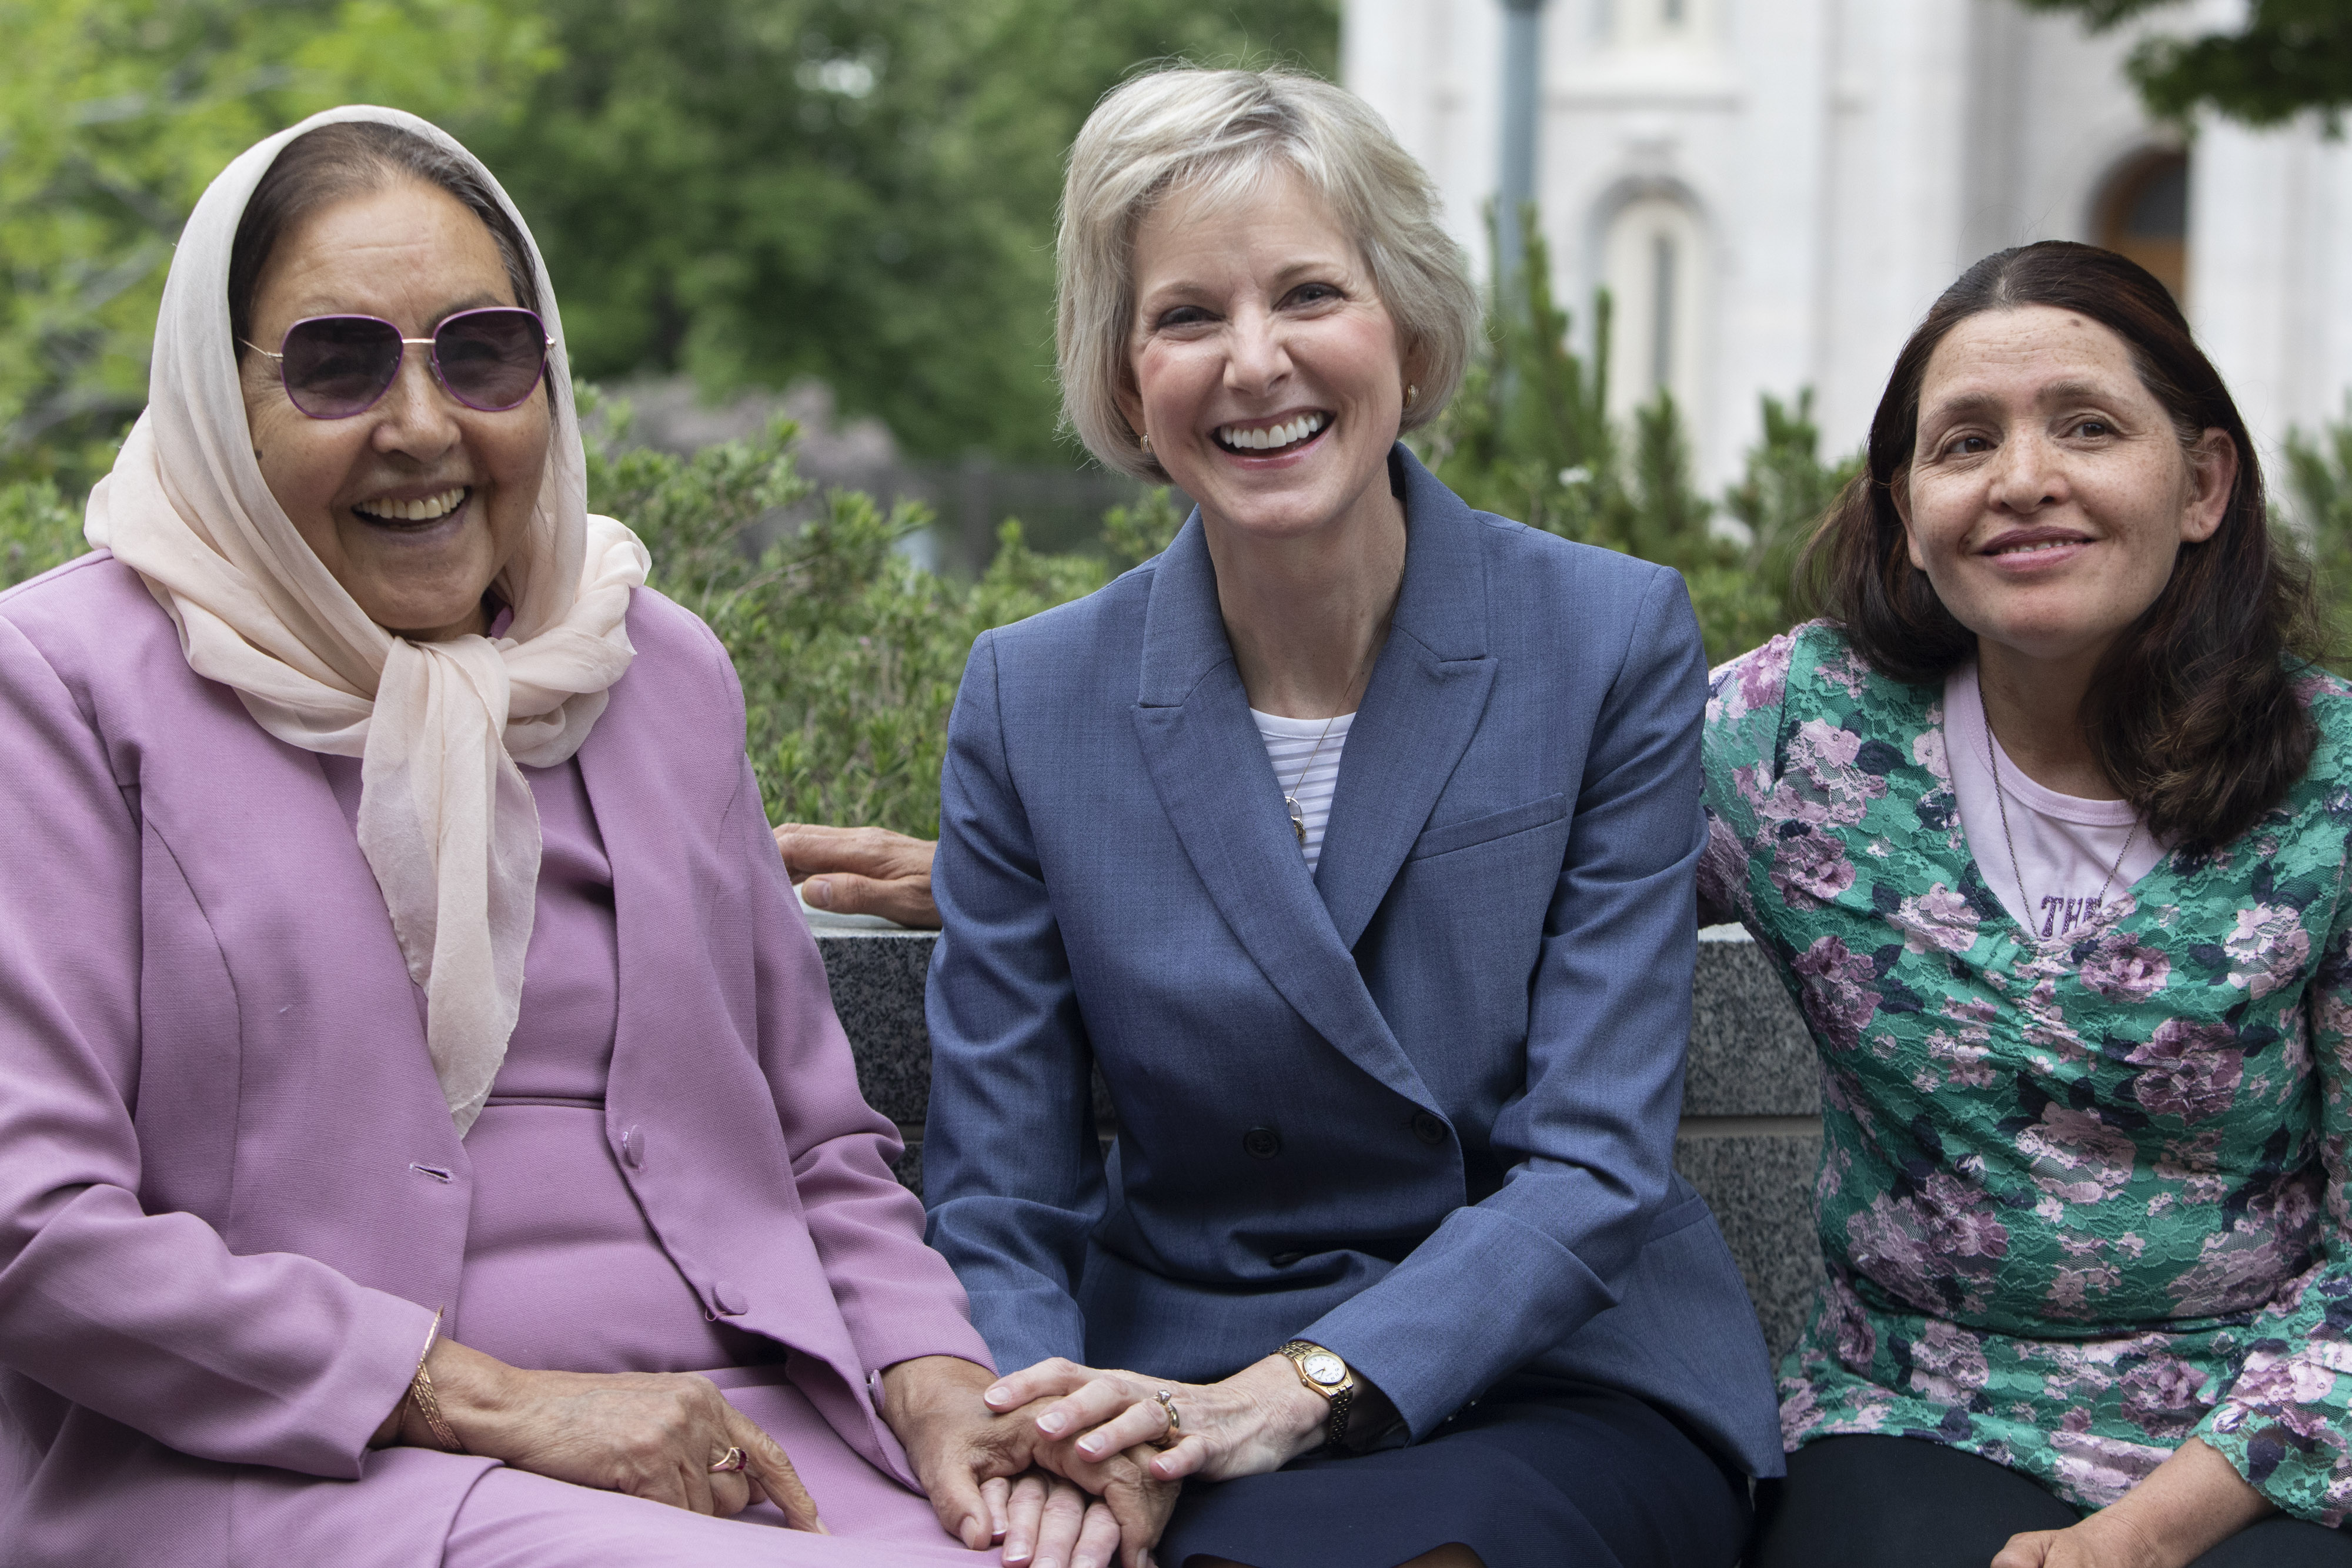 Sister Jean B. Bingham sits with Asifa Nadir, left, and Nadira Nadir outside the Relief Society Building on Temple Square prior to an interview with representatives from USA for UNHCR on May 16, 2019. Sister Bingham has known the Nadir family, refugees from Afghanistan for nearly 15 years.